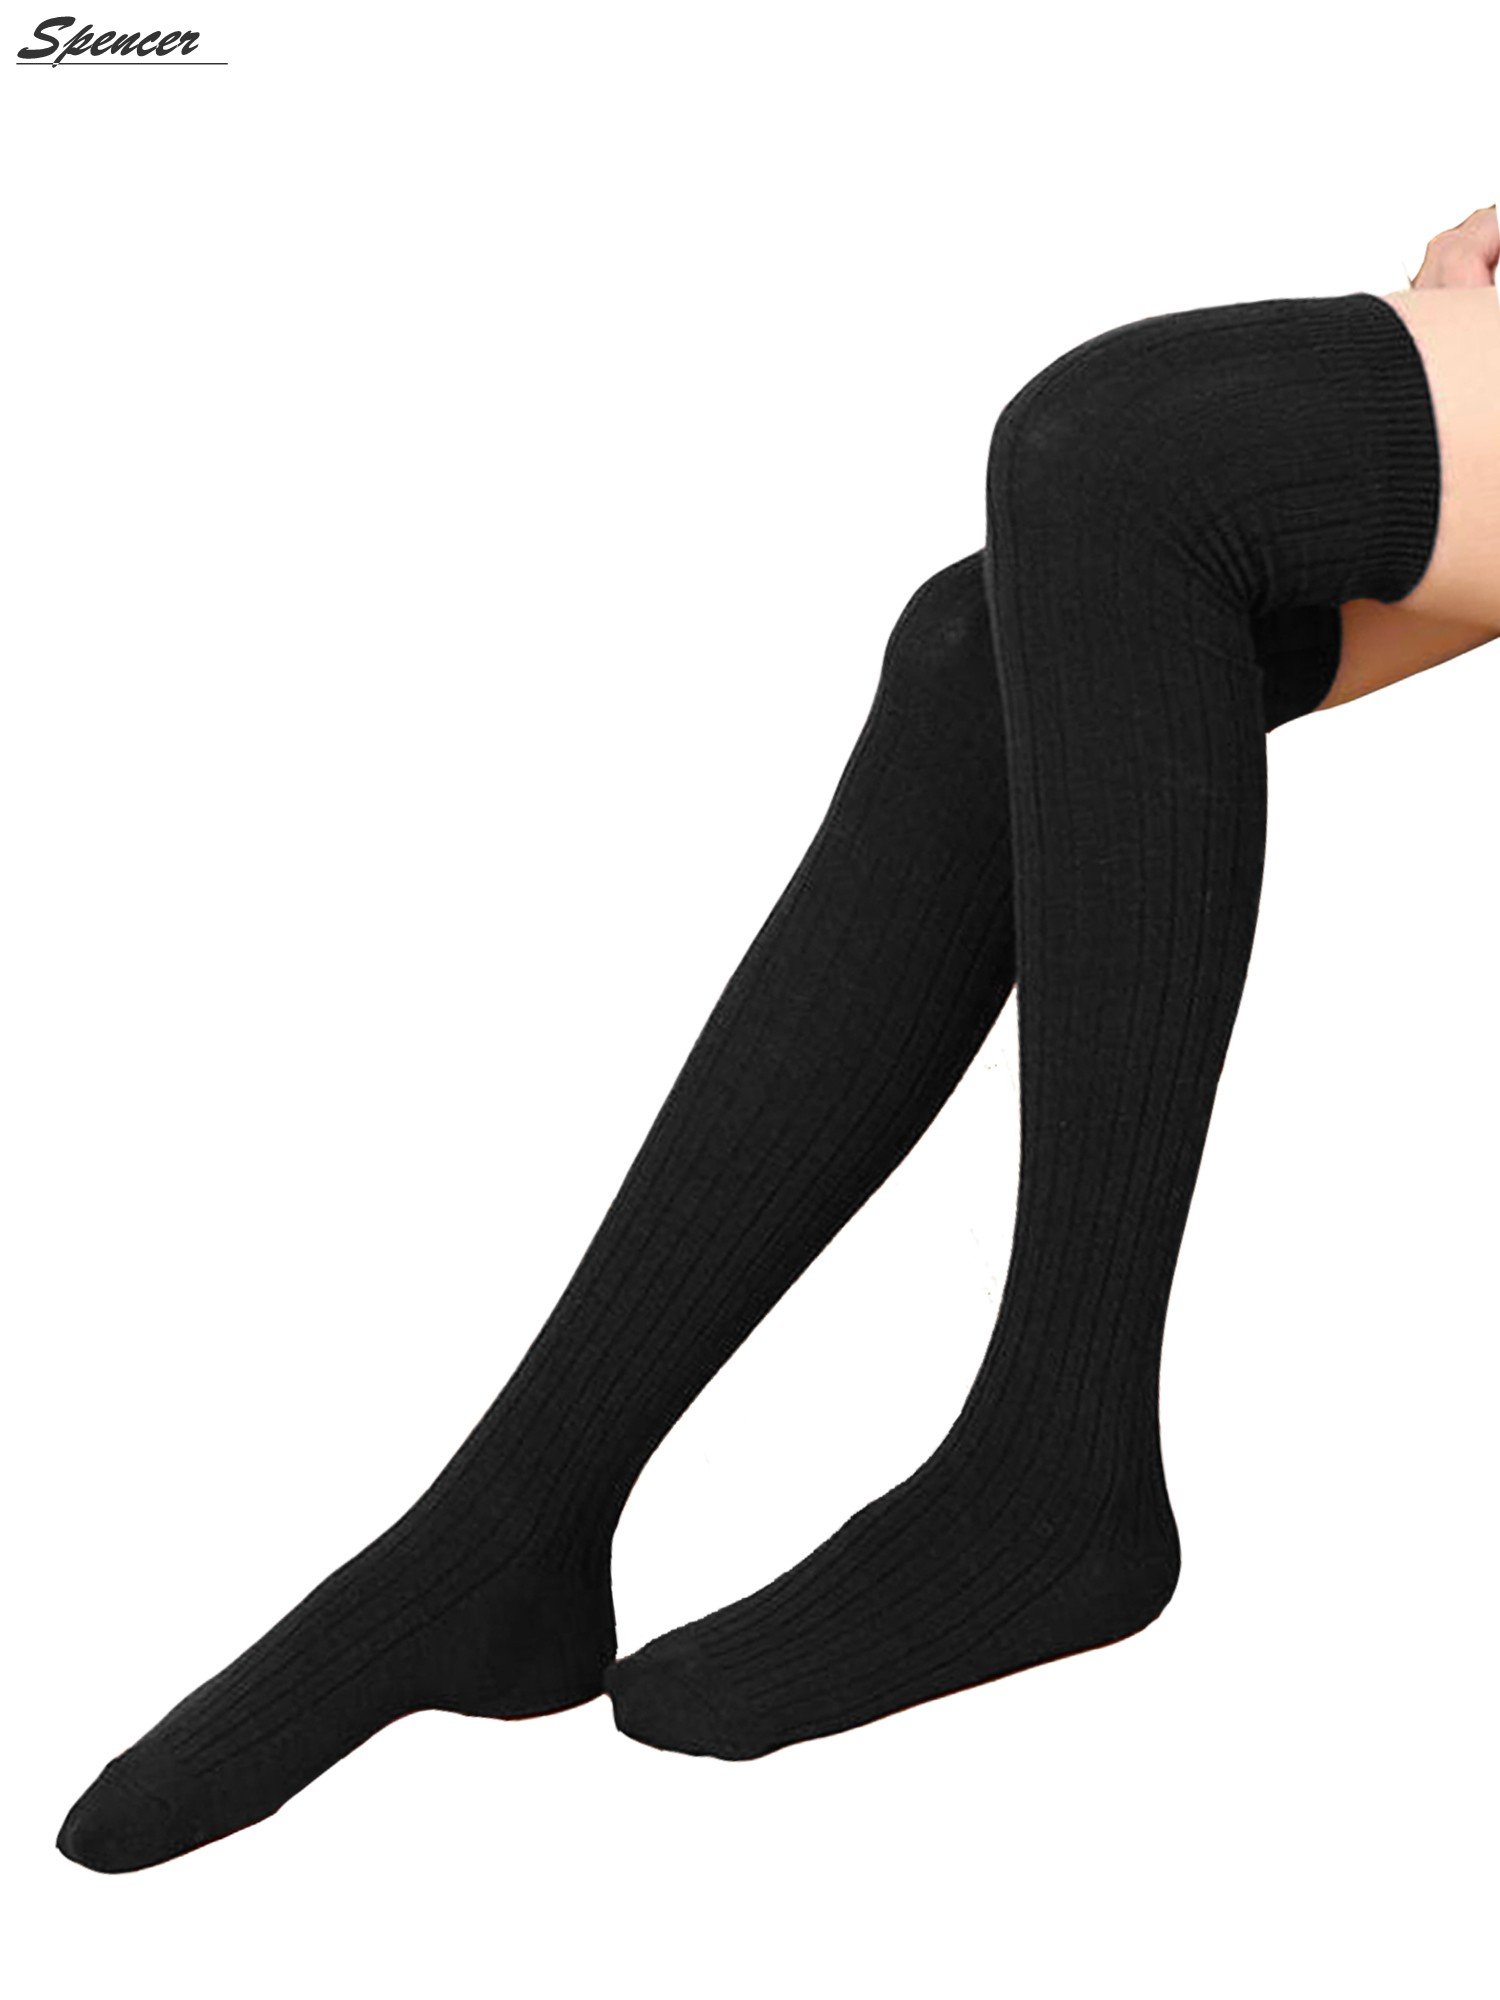 5fbc15c5537ec Spencer - Spencer Women Thigh High Socks Over the Knee Leg Warmer Tall Long  Boot Knit Stocking Girls Leggings